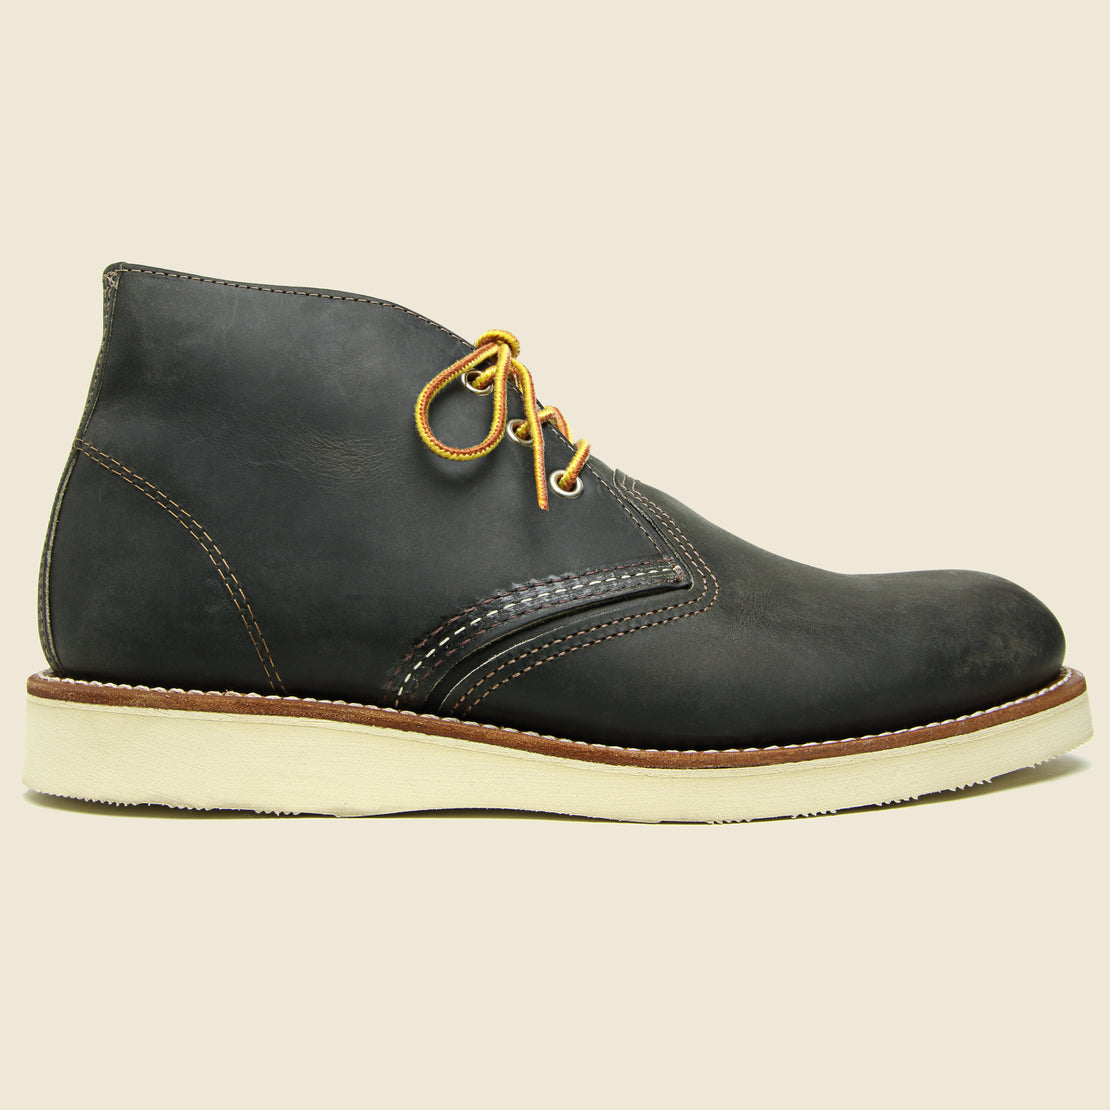 Red Wing Classic Chukka No. 3150 - Charcoal Rough & Tough